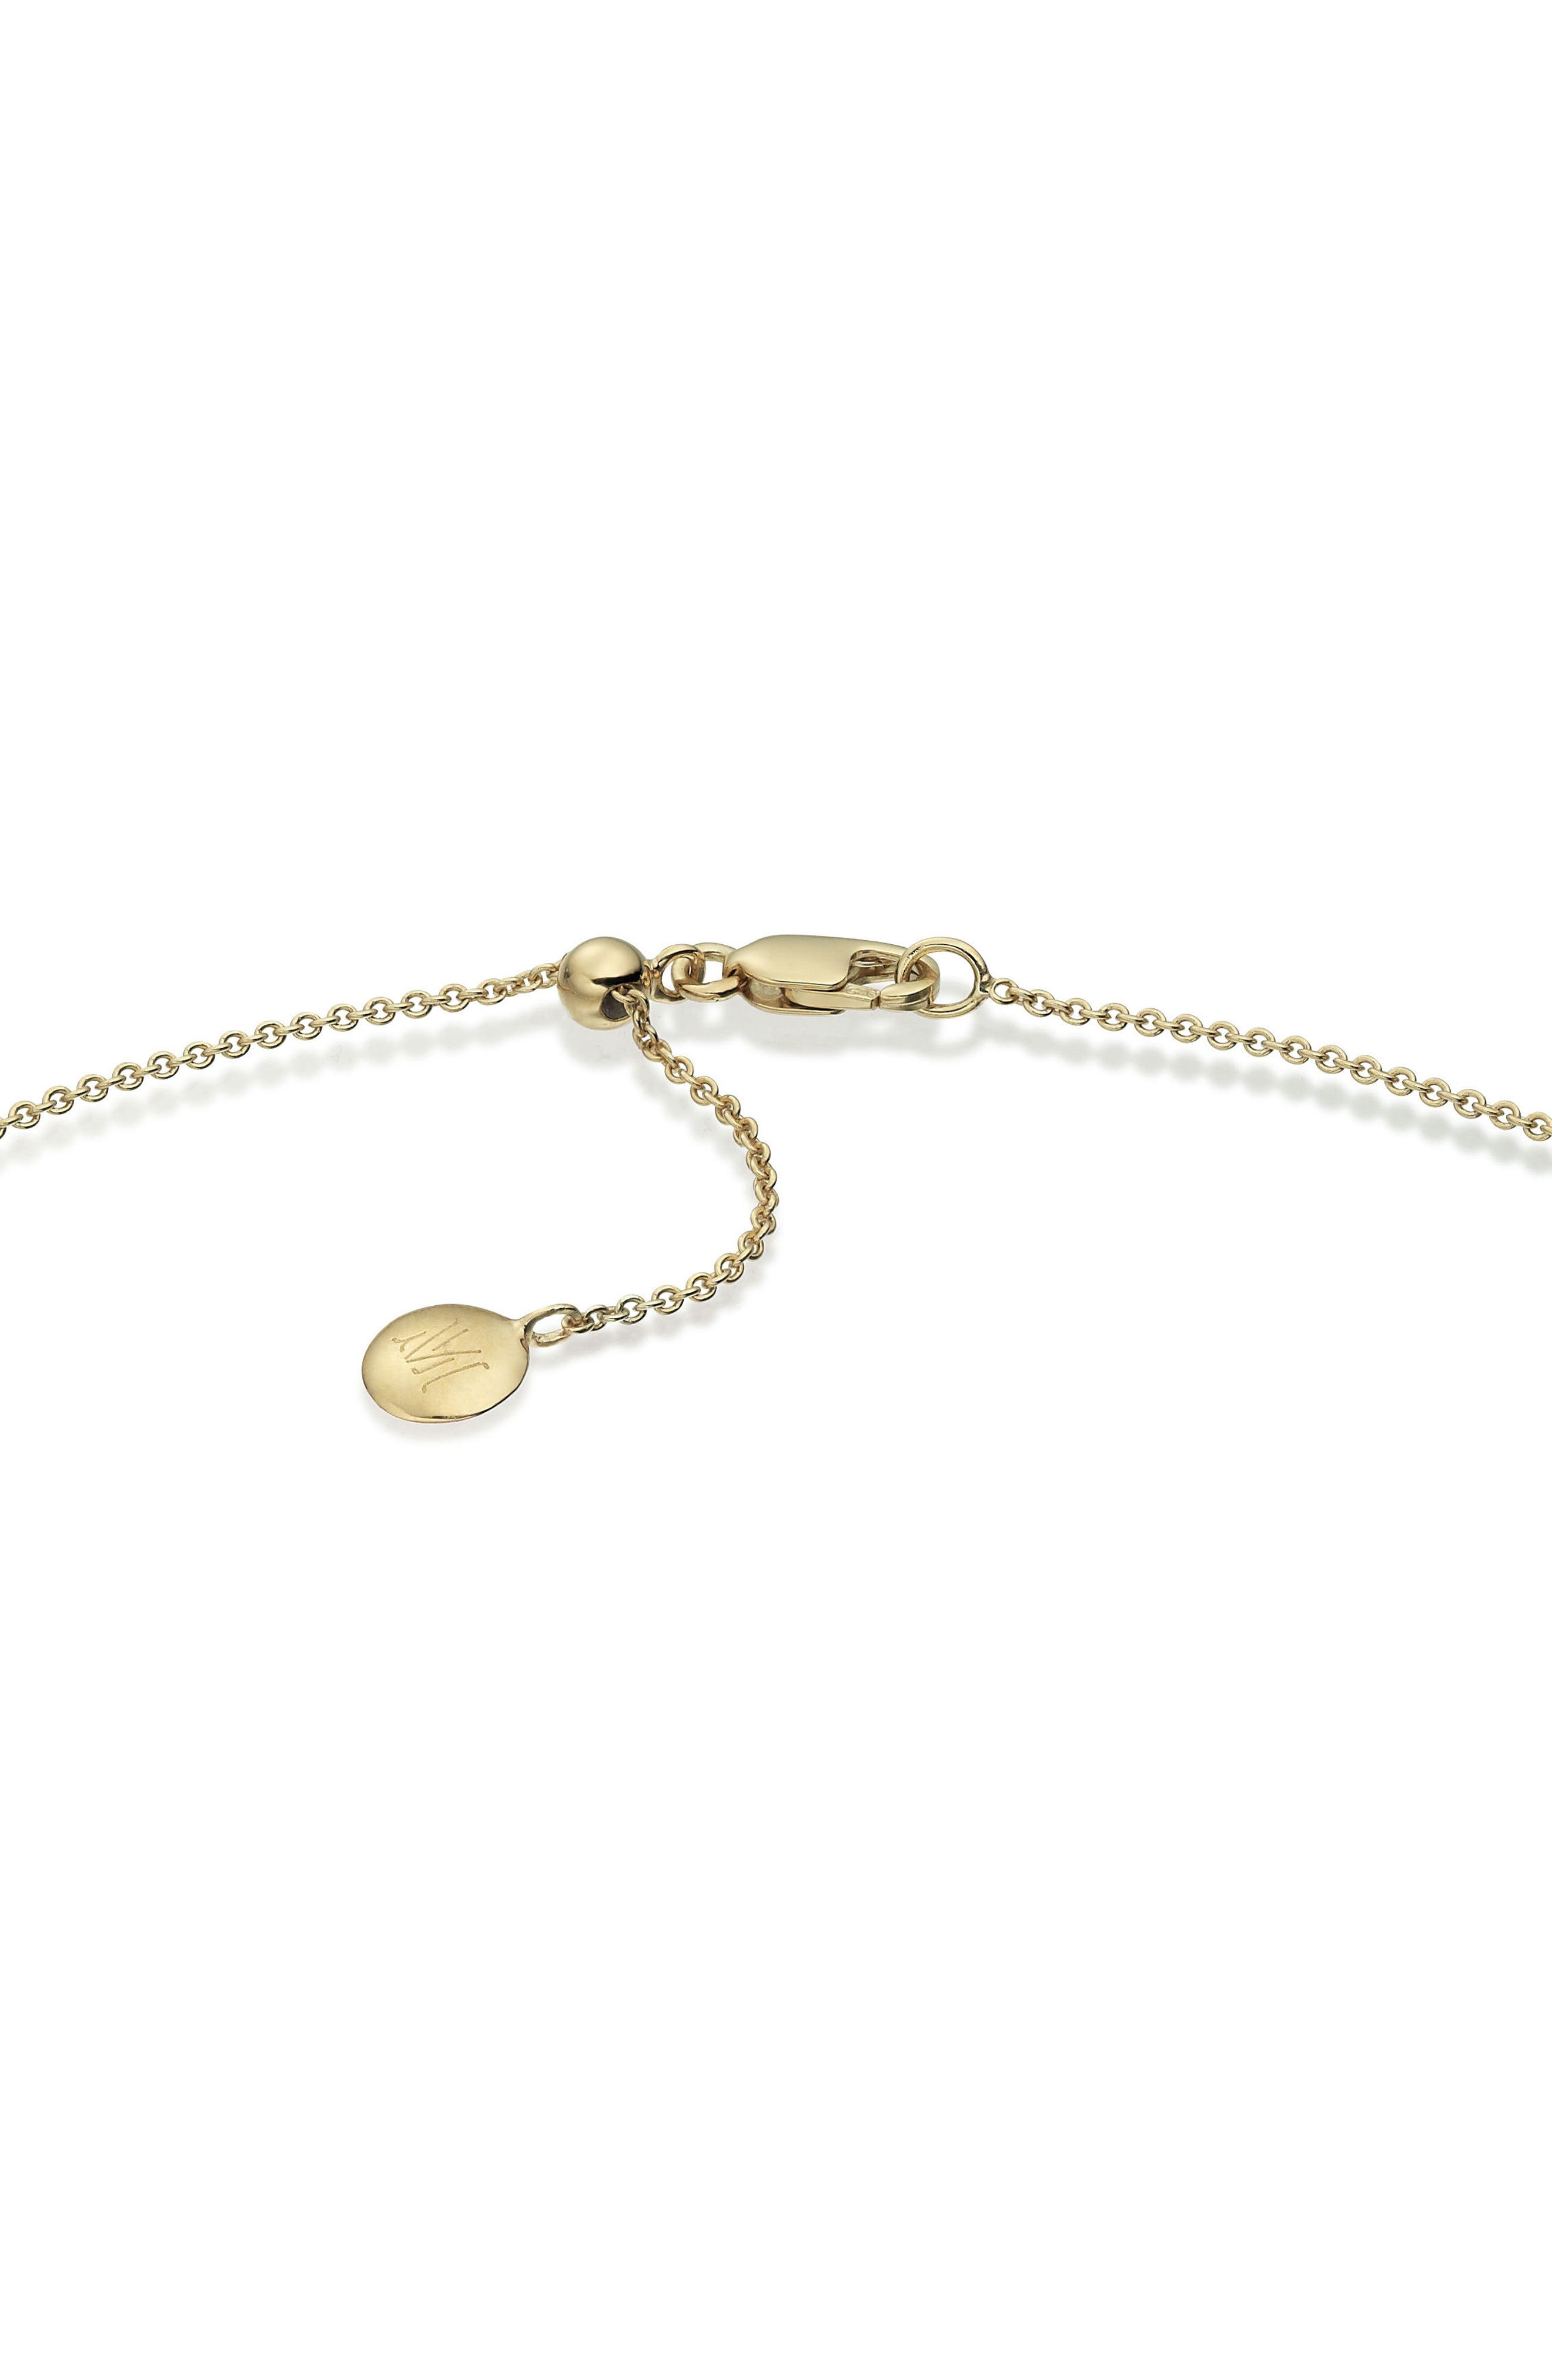 32 Inch Adjustable Rolo Chain,                             Alternate thumbnail 3, color,                             YELLOW GOLD